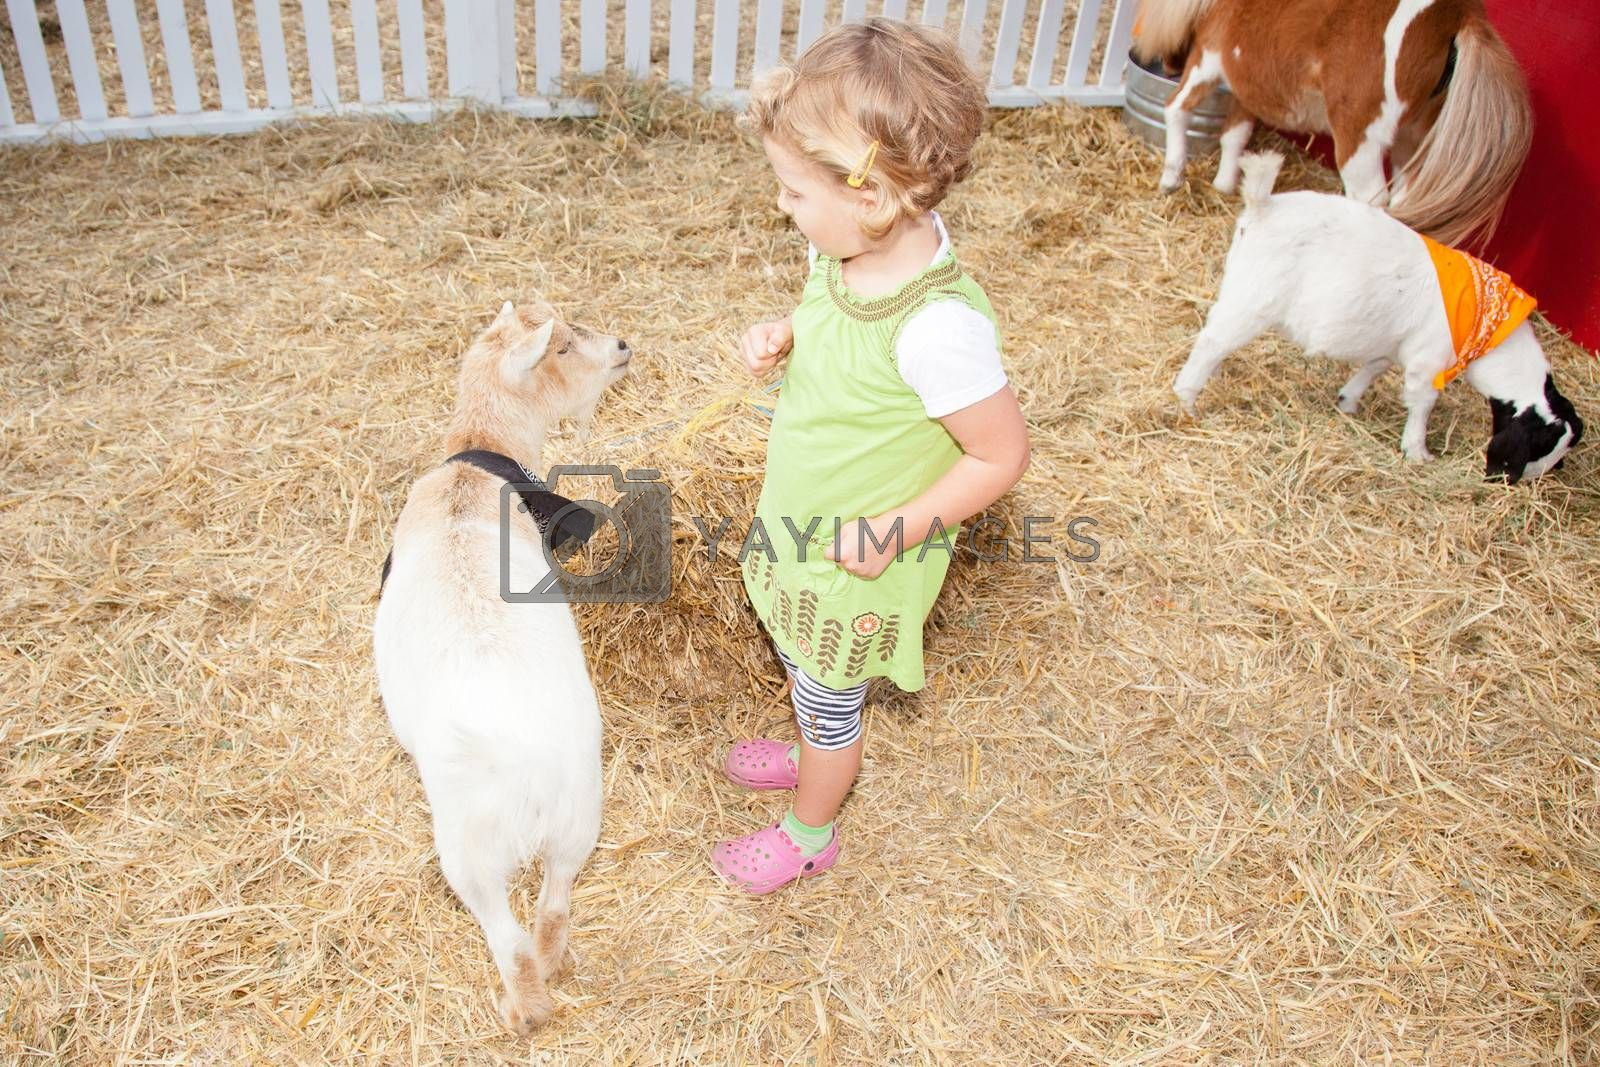 Playing with animals in petting zoo on a pumpkin patch.